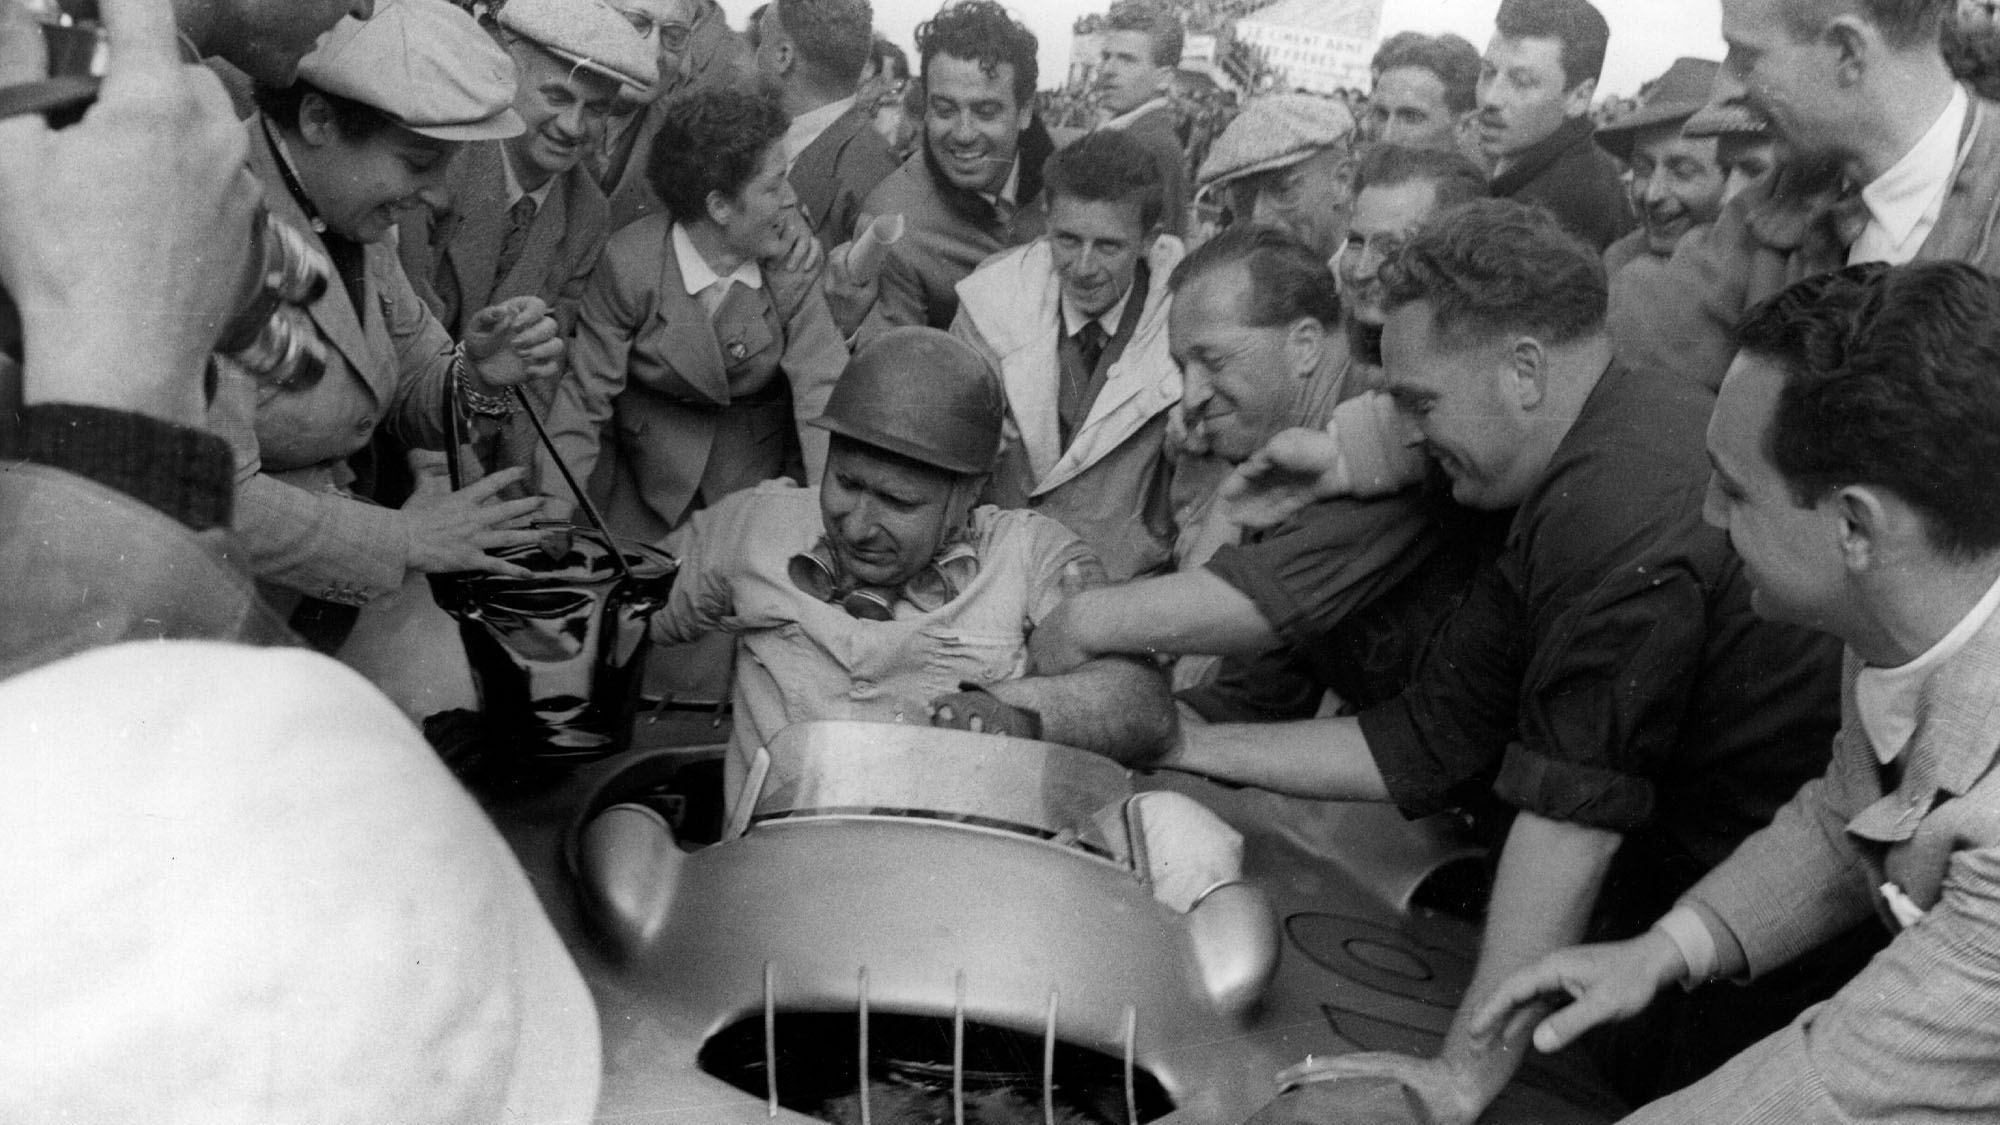 17th July 1954: Racing driver Juan Manuel Fangio (1911- 1995), receiving congratulations after winning the French Grand Prix at Reims in a Mercedes car. Original Publication: Picture Post - 7209 - First Race Of The Mercedes - A Ruthless Triumph - pub. 1954 (Photo by Joseph McKeown/Picture Post/Hulton Archive/Getty Images)